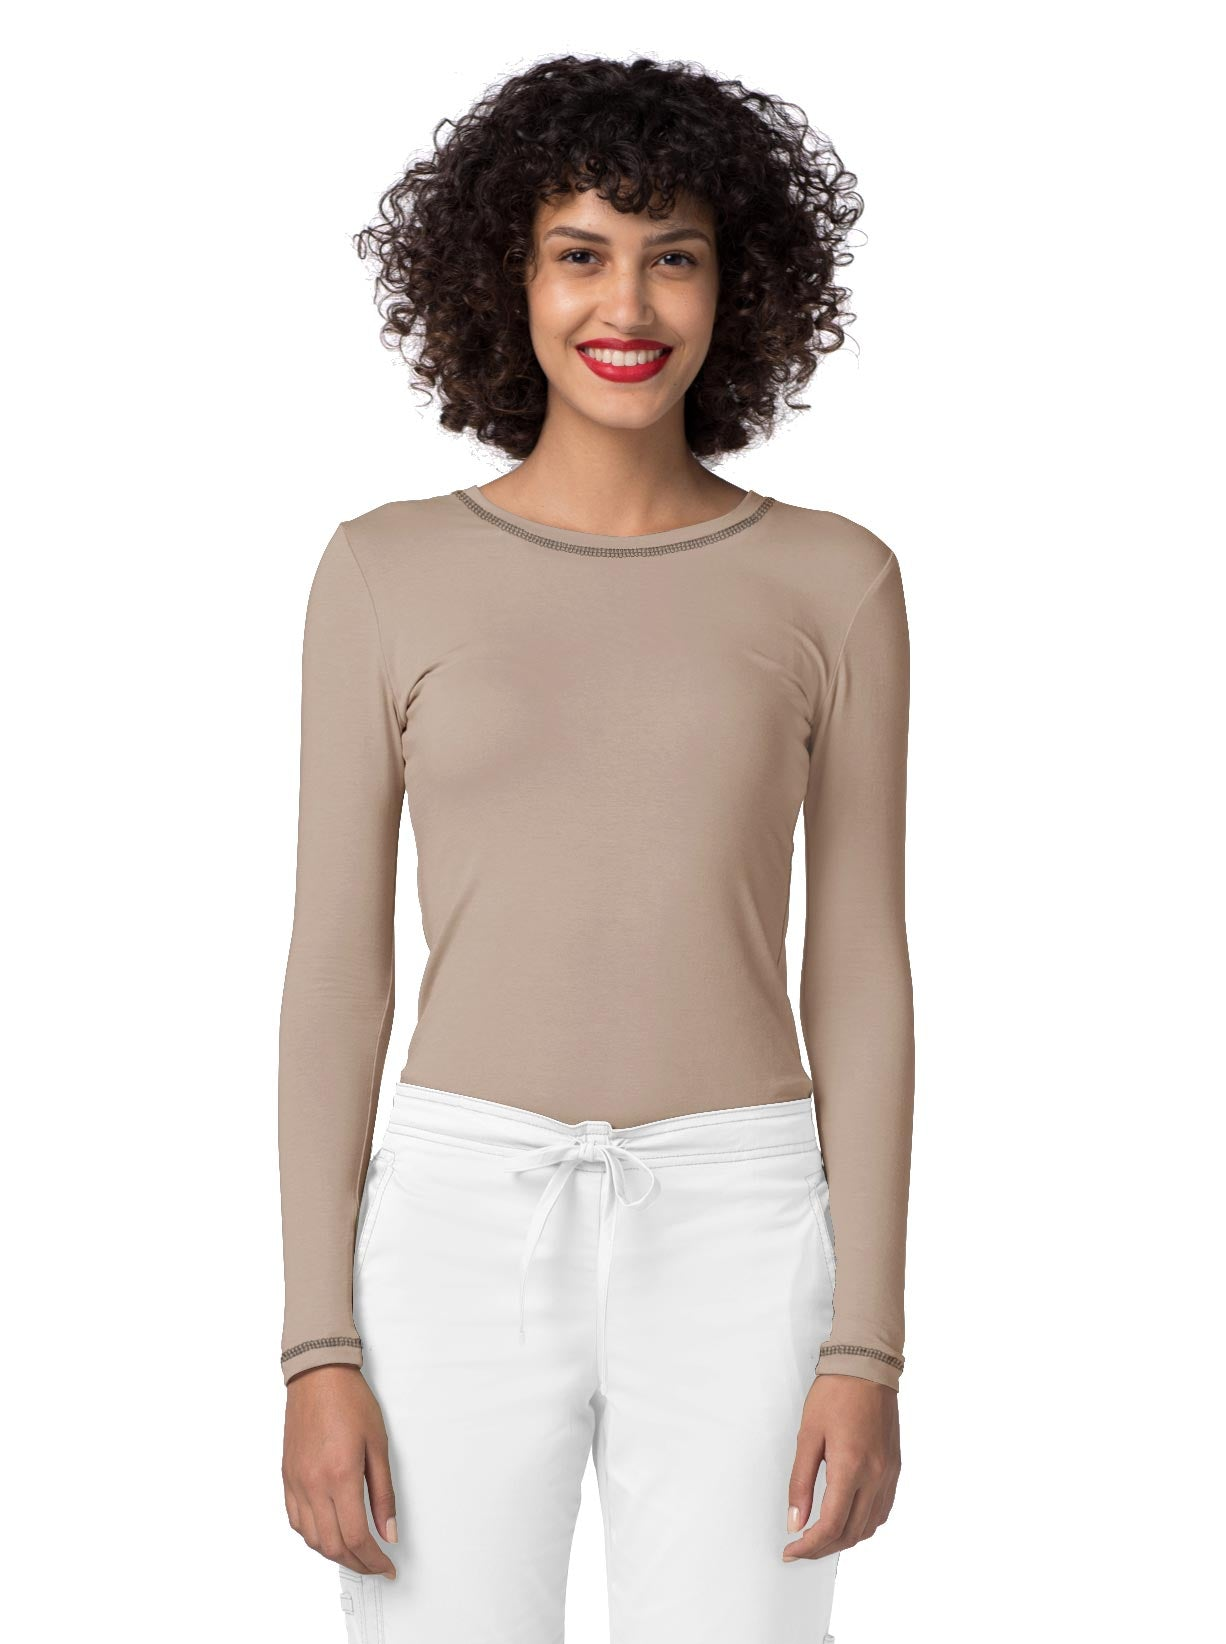 Adar Pop-Stretch Long Sleeve Fitted Tee